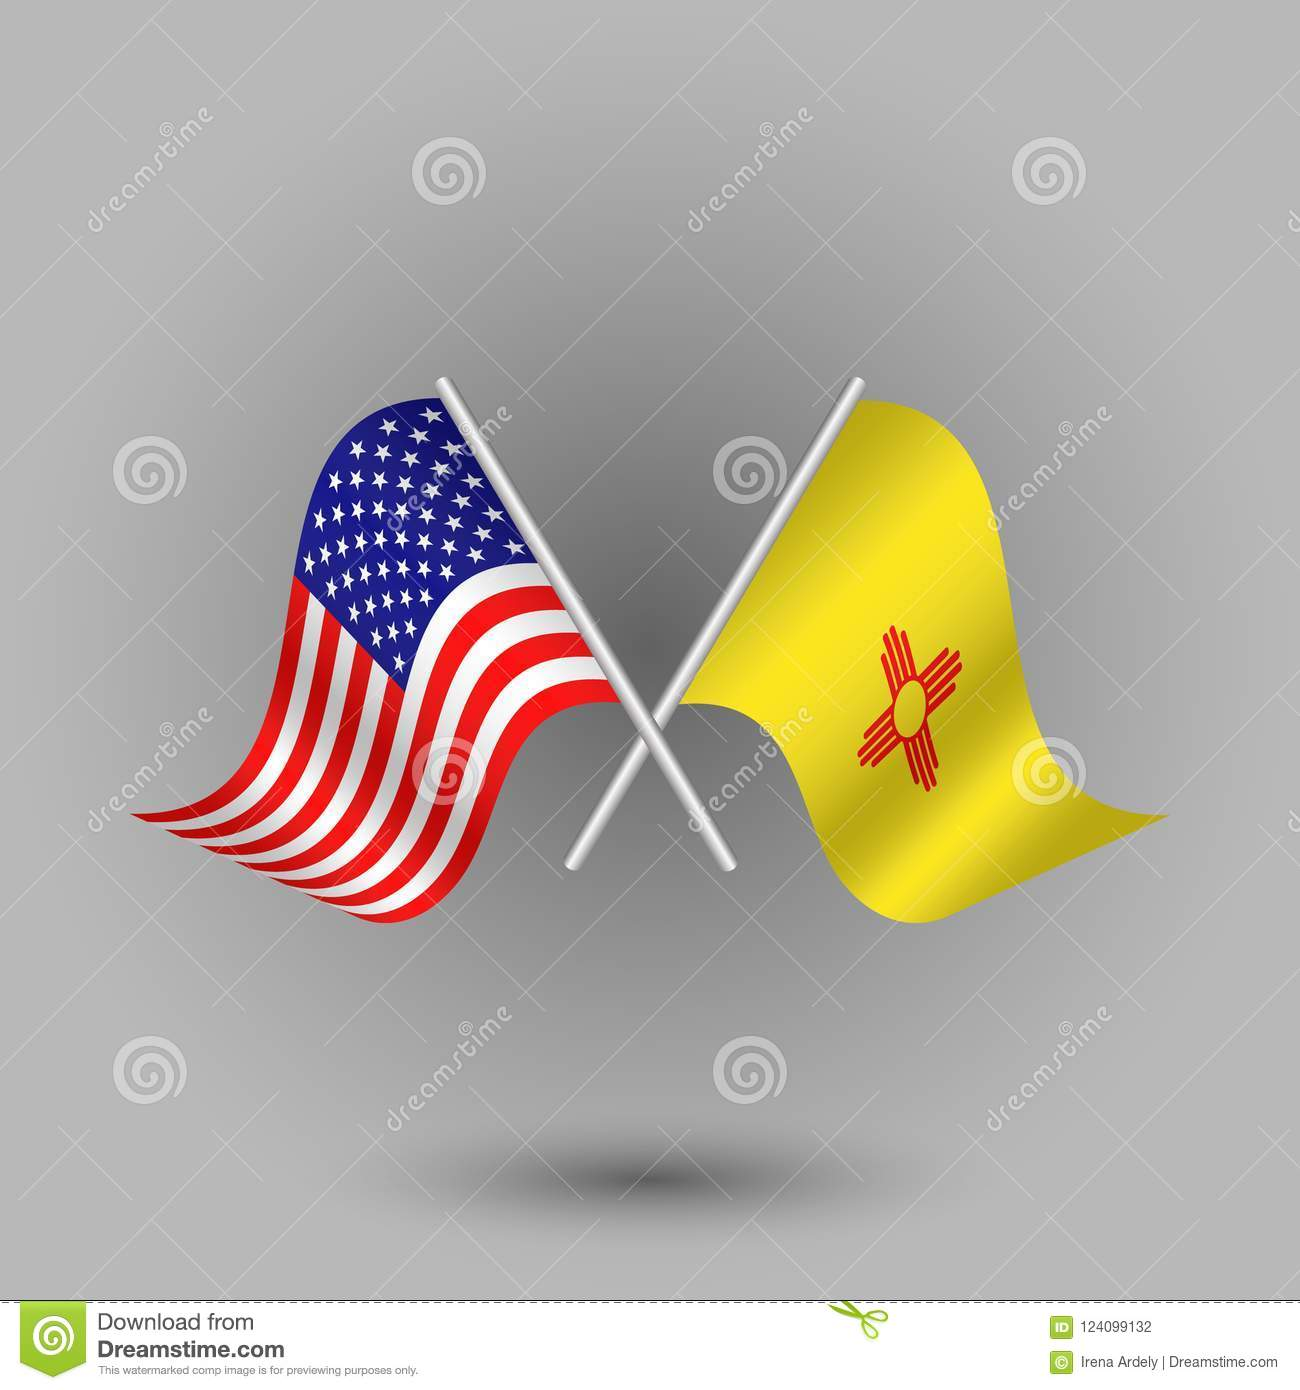 Vector Two Crossed American And Flag Of New Mexico Symbols Of United